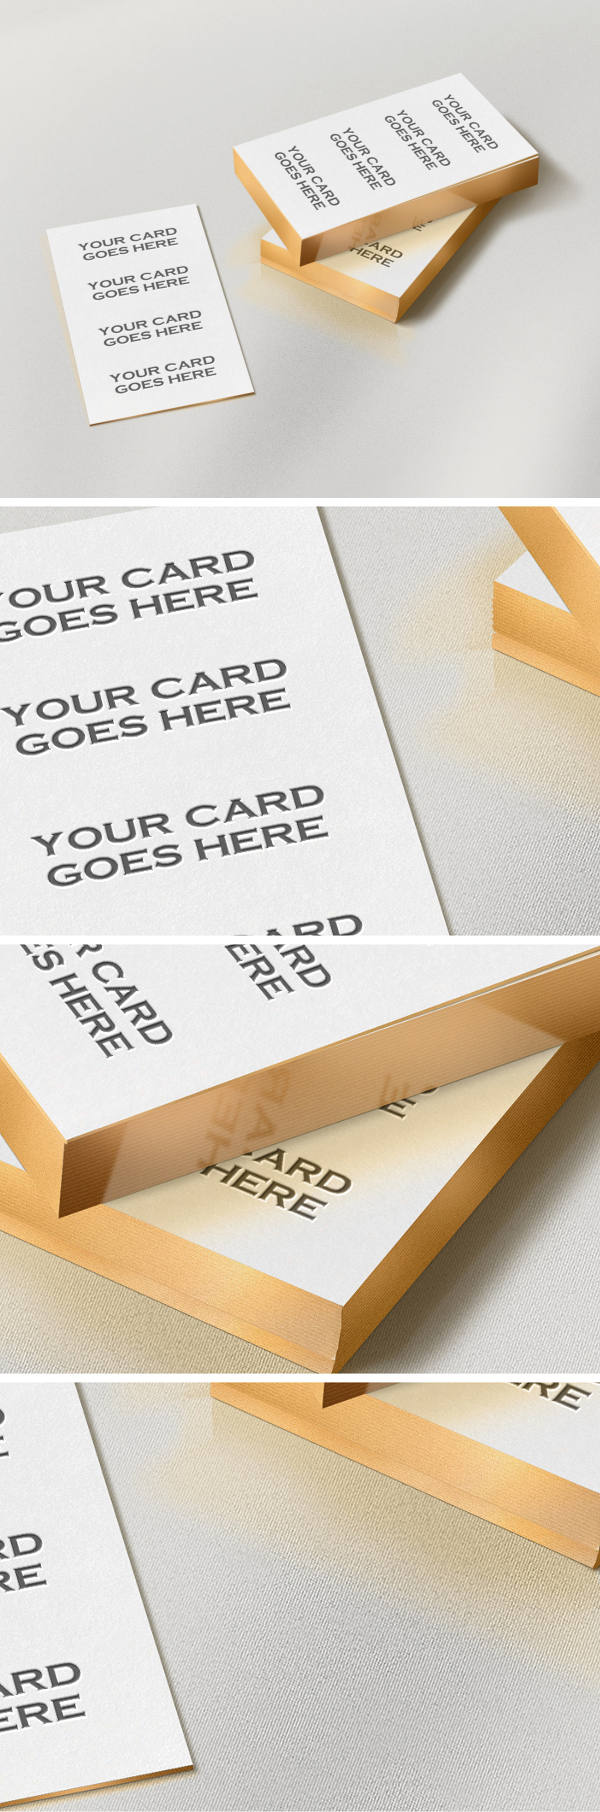 Gold-edge-cards600